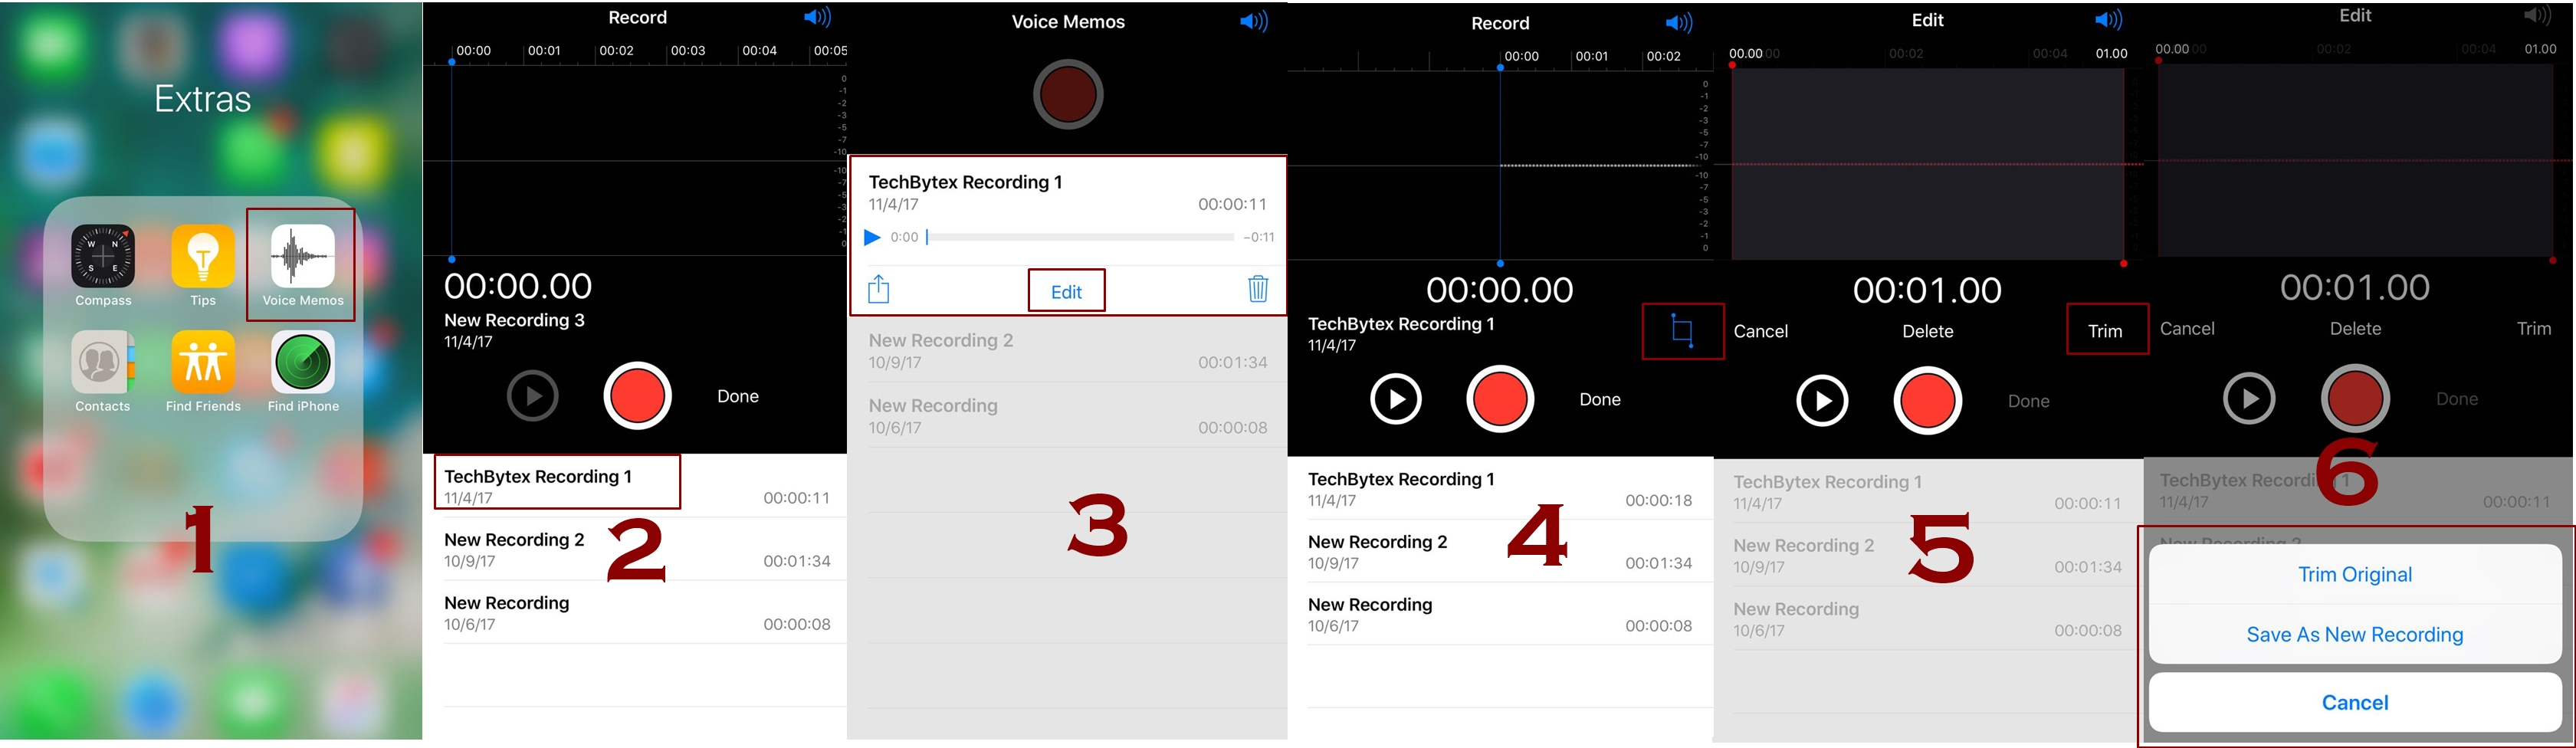 how to edit and trim voice memos on iphone - How to edit and trim voice memos on iPhone